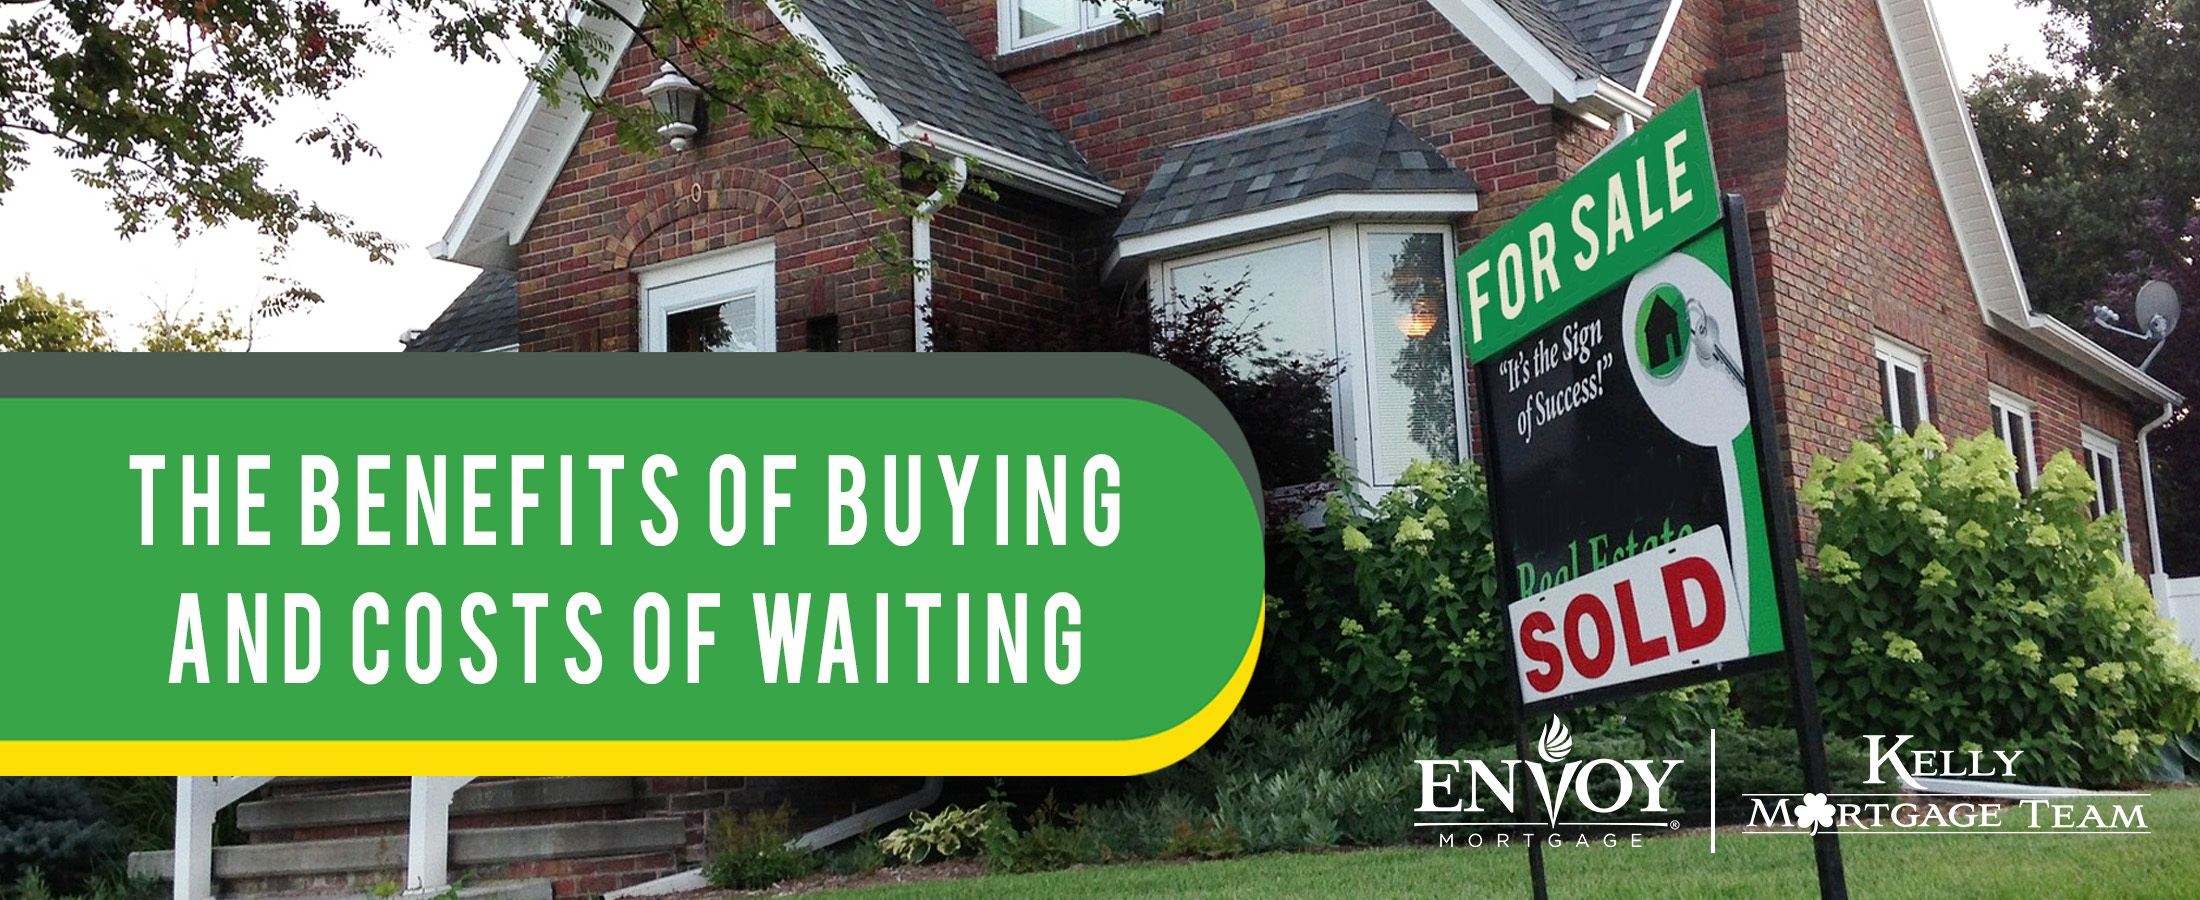 The Benefits of Buying and Costs of Waiting